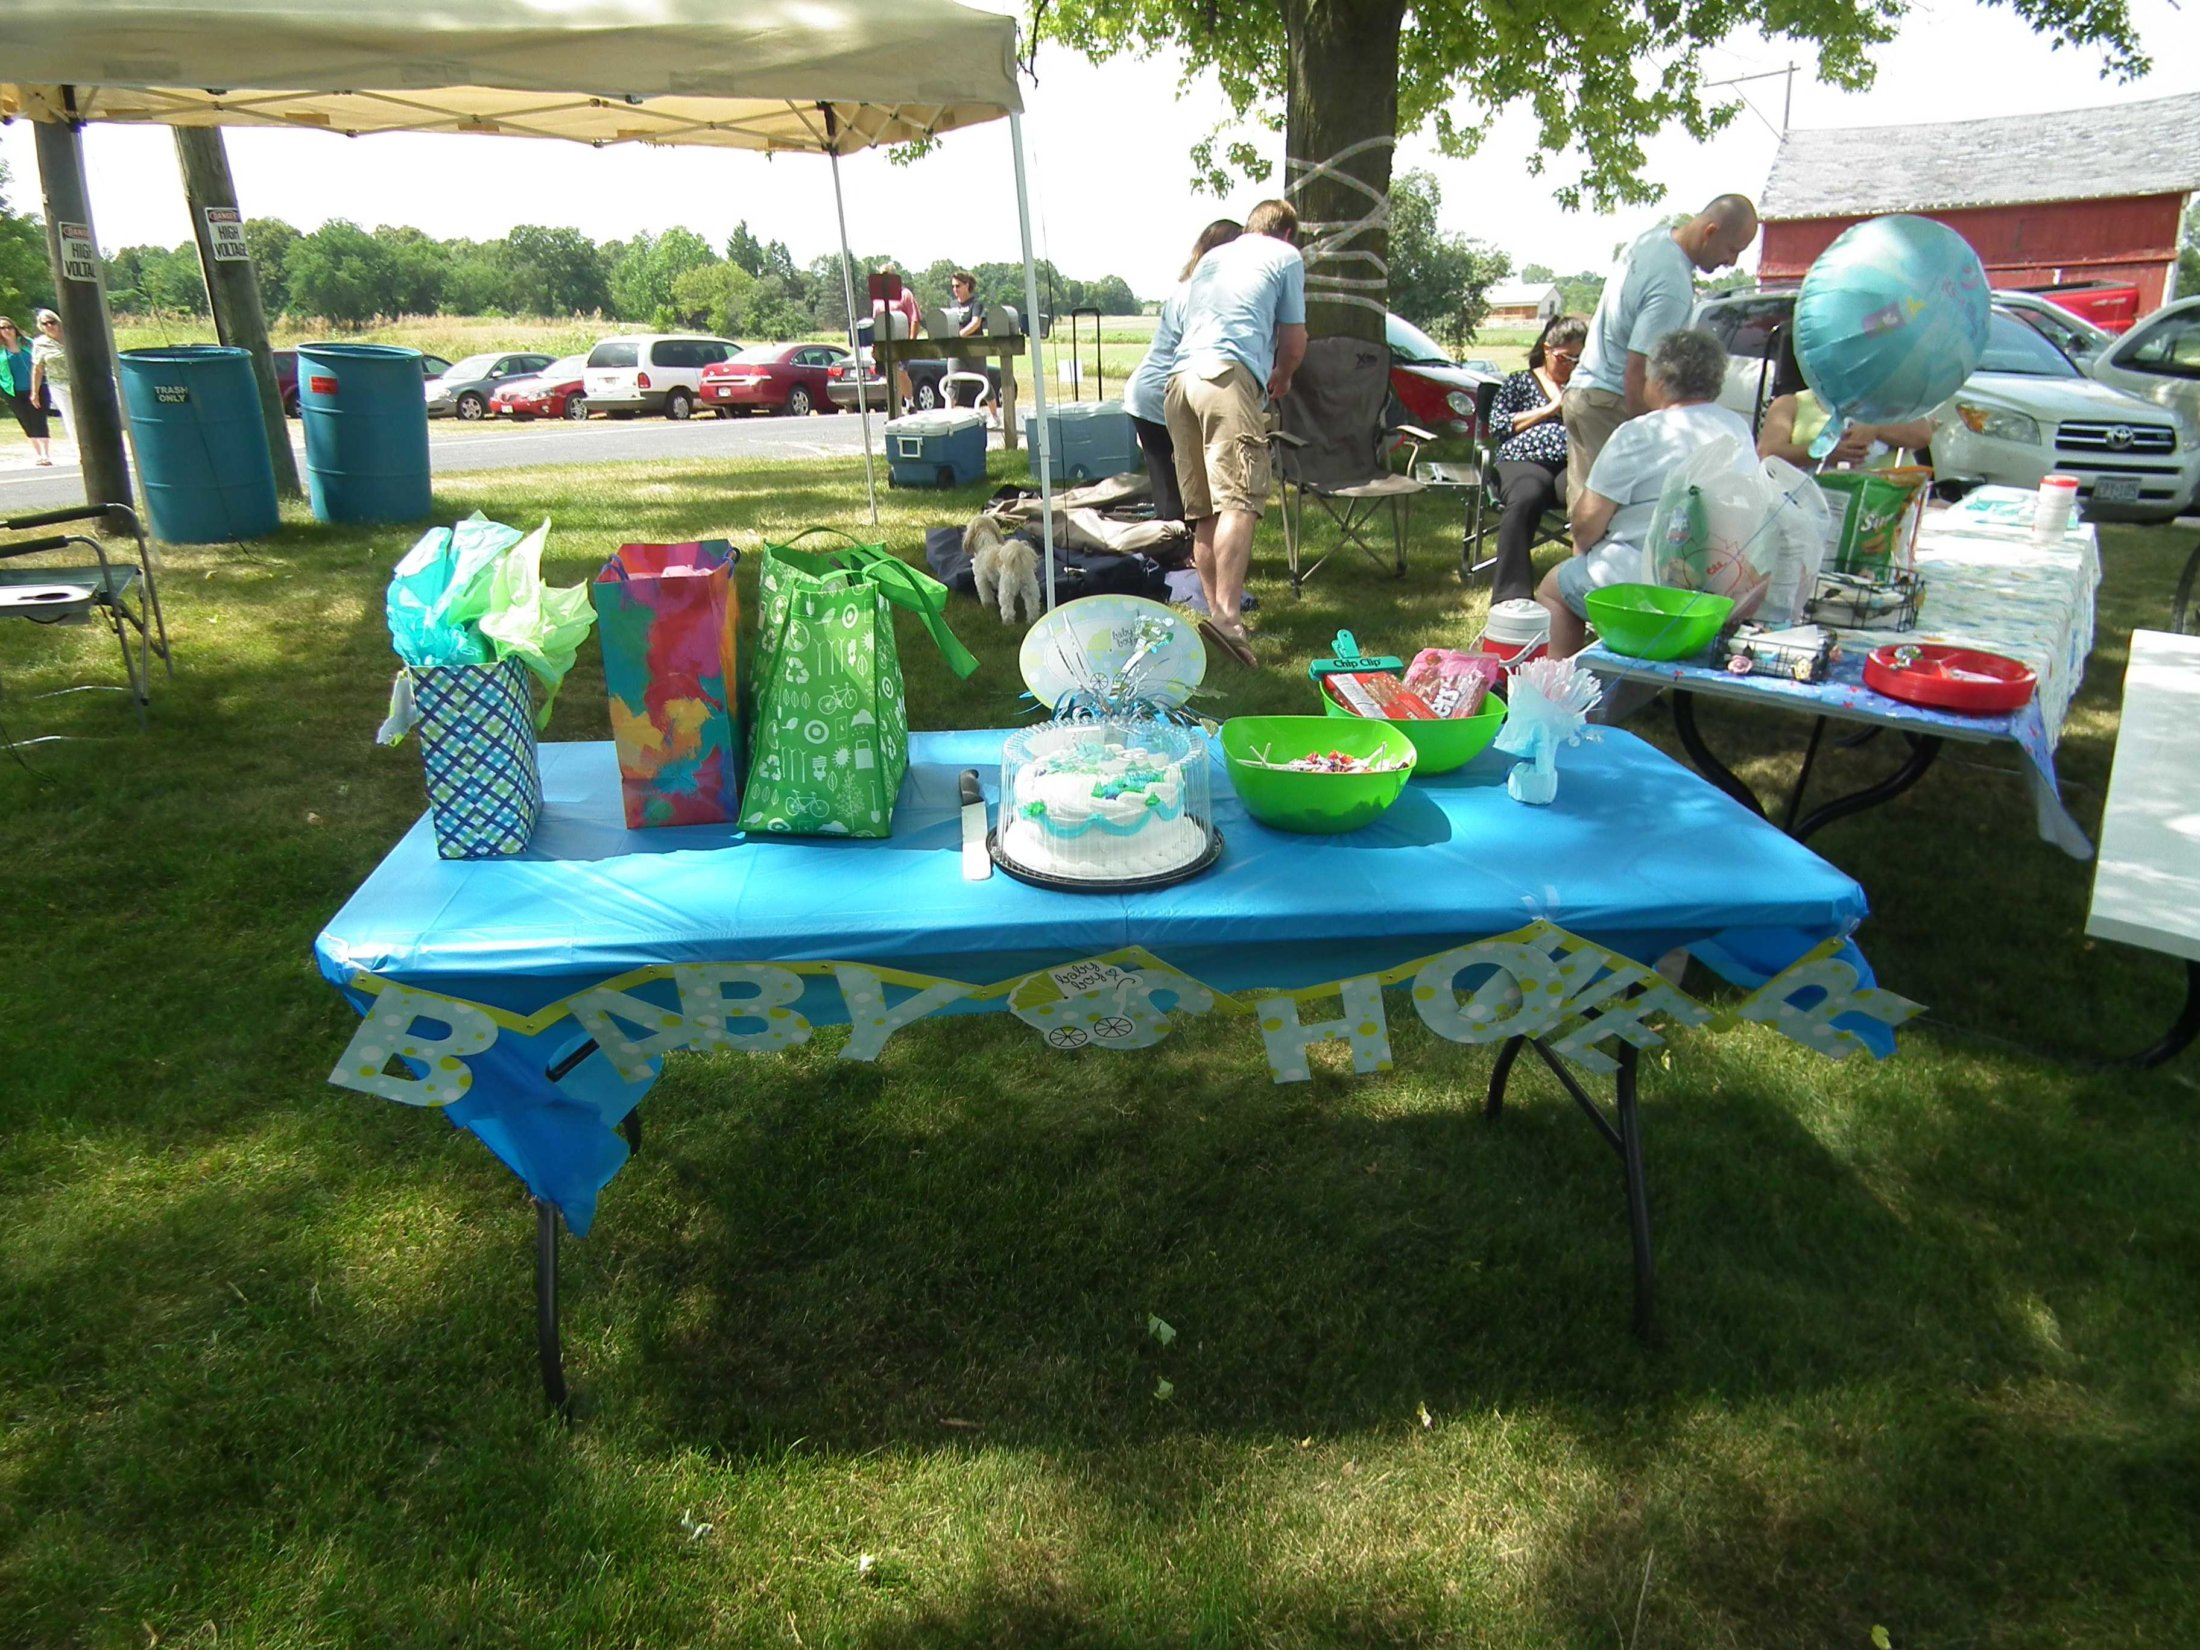 Baby shower for youngest baby at the reunion 6 days old